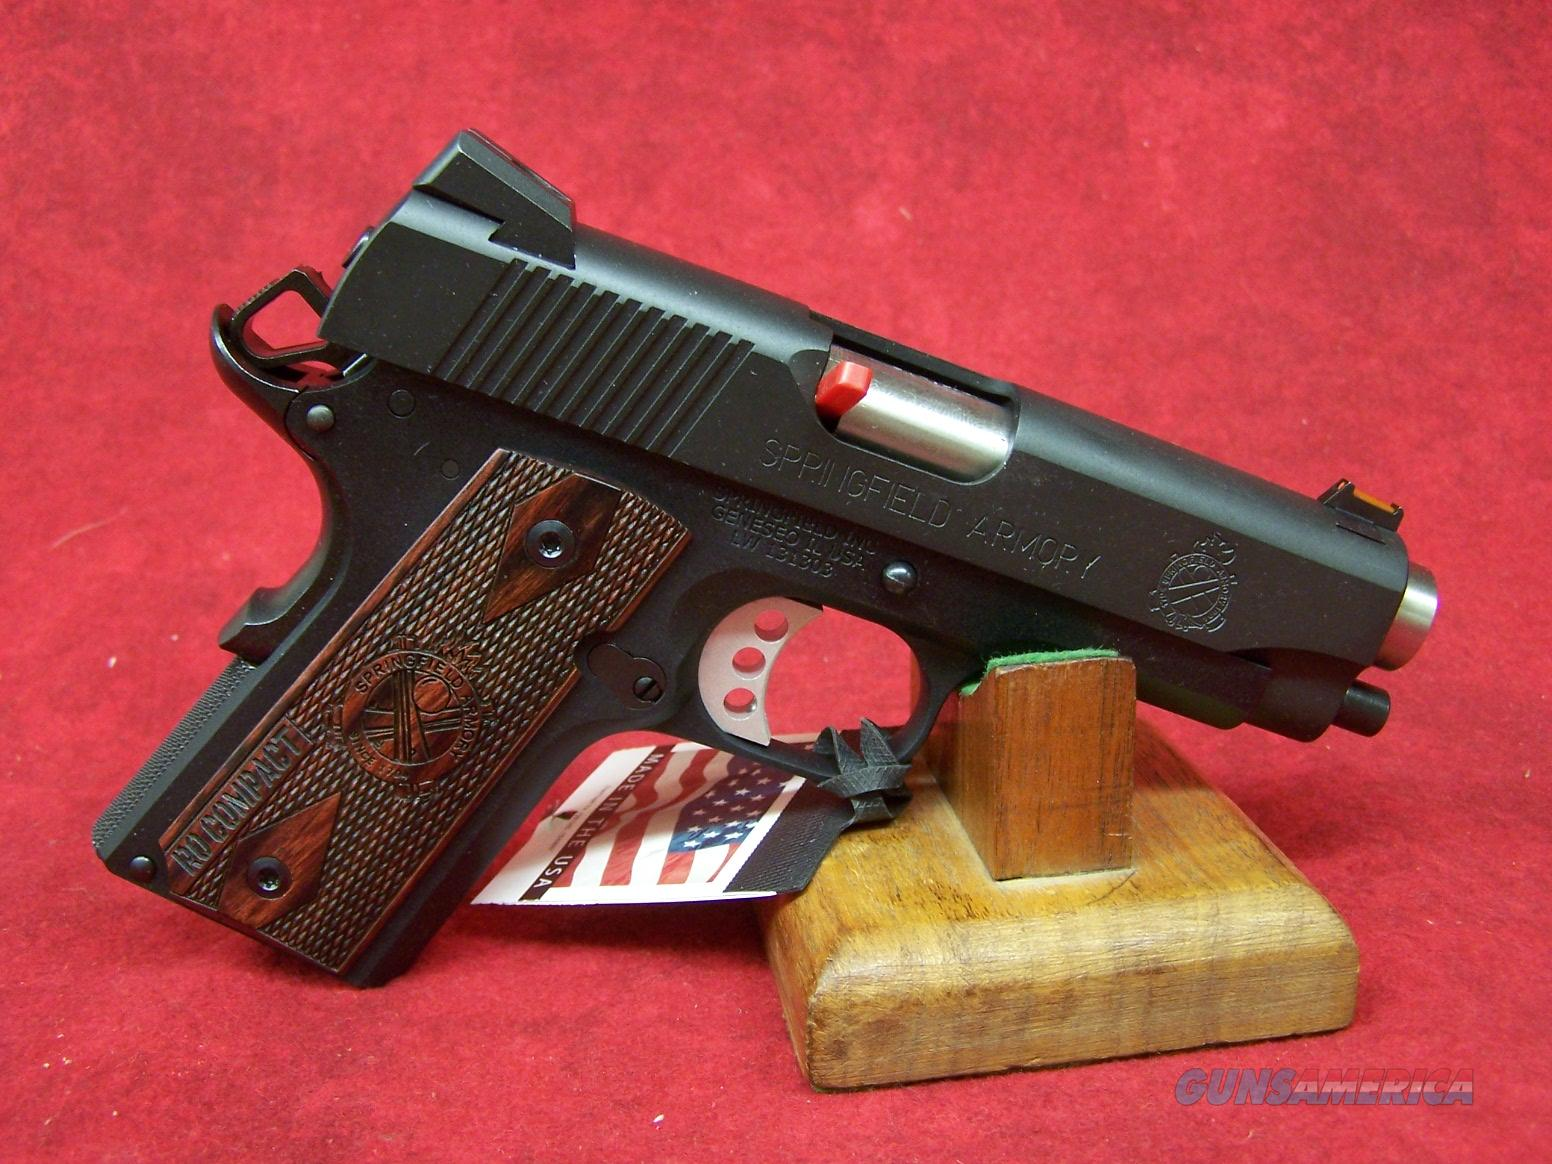 Springfield Armory 1911 Lightweight Compact Range Officer 9mm (PI9125LP)  Guns > Pistols > Springfield Armory Pistols > 1911 Type